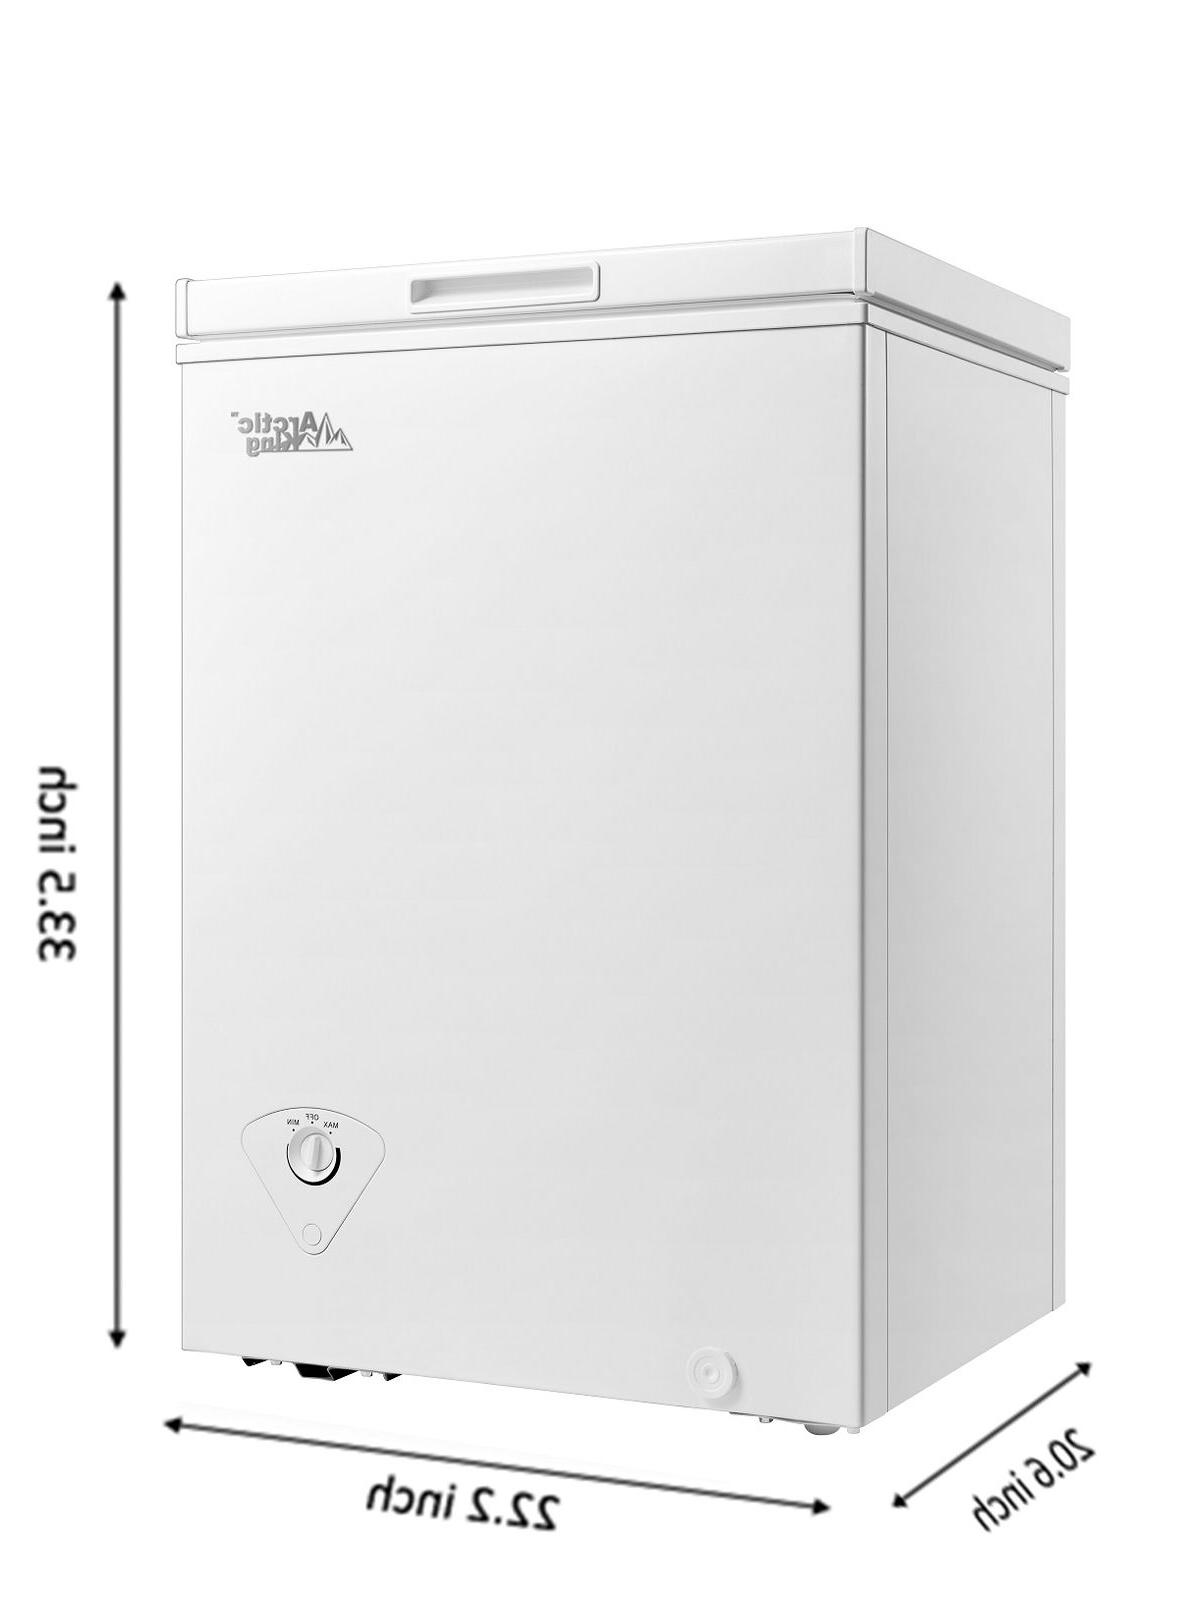 Arctic King 3.5 cu.ft Chest Freezer - FAST SHIPPING